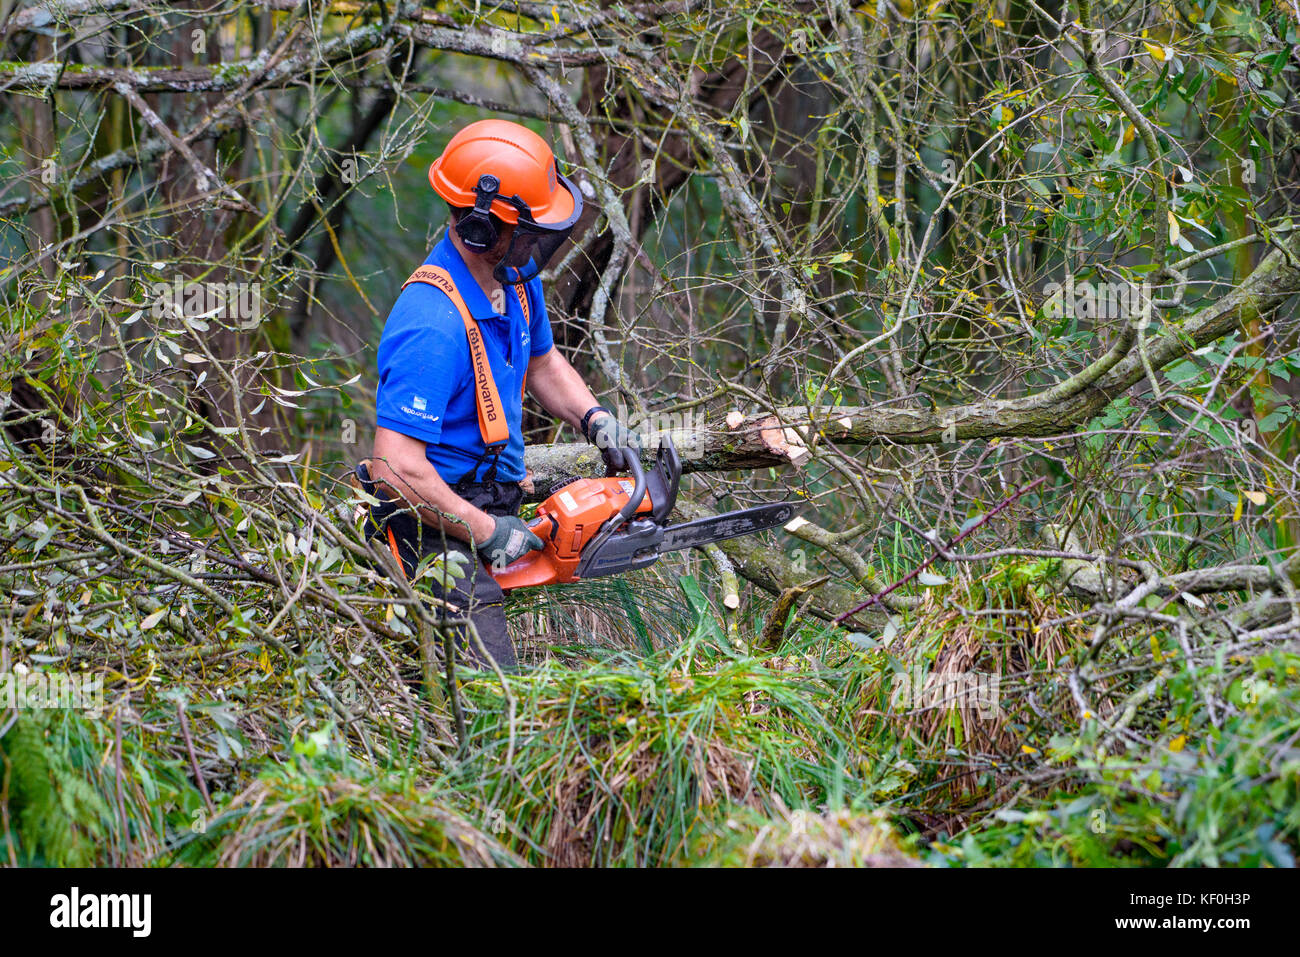 Man using a Husqvarna chainsaw to thin out a wood, RSPB Leighton Moss, Silverdale, Carnforth, Lancashire. Stock Photo